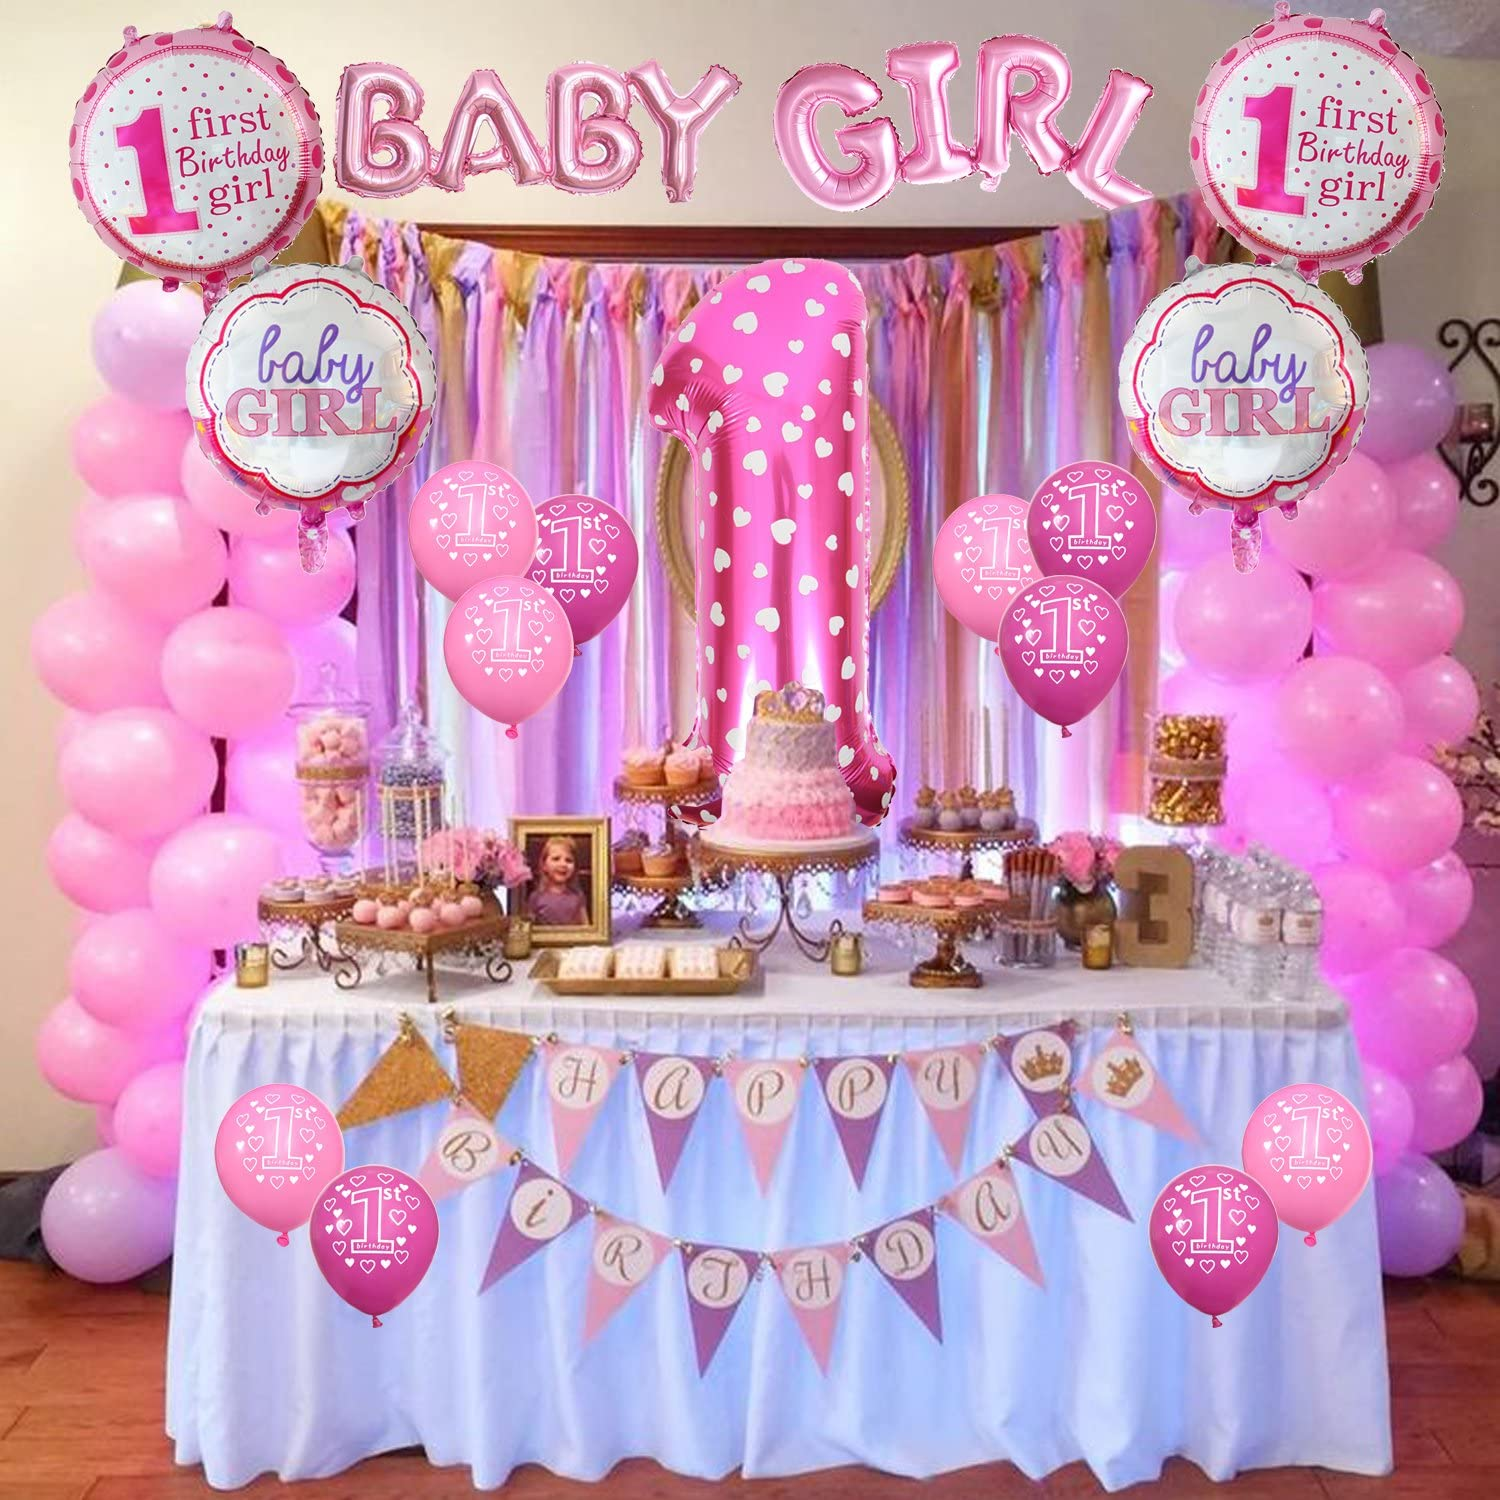 Amazon Com Cocodeko 1st Birthday Decoration Inflatable Helium Foil Balloons Baby Girls Birthday Party Air Balloons Set Supplies For Baby Shower Photo Props Pink Number First Birthday Decorations Girl Toys Games